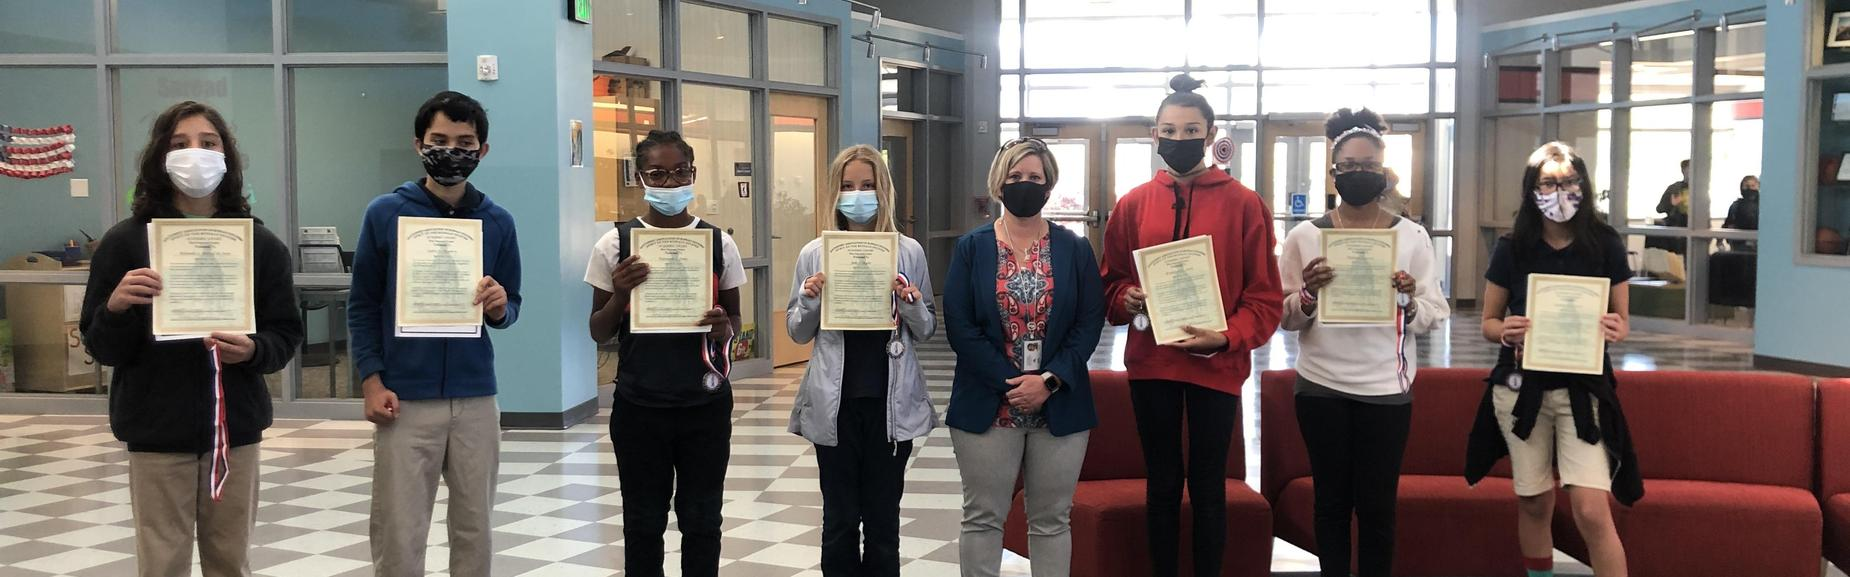 Eight people standing in line displaying award certificates.